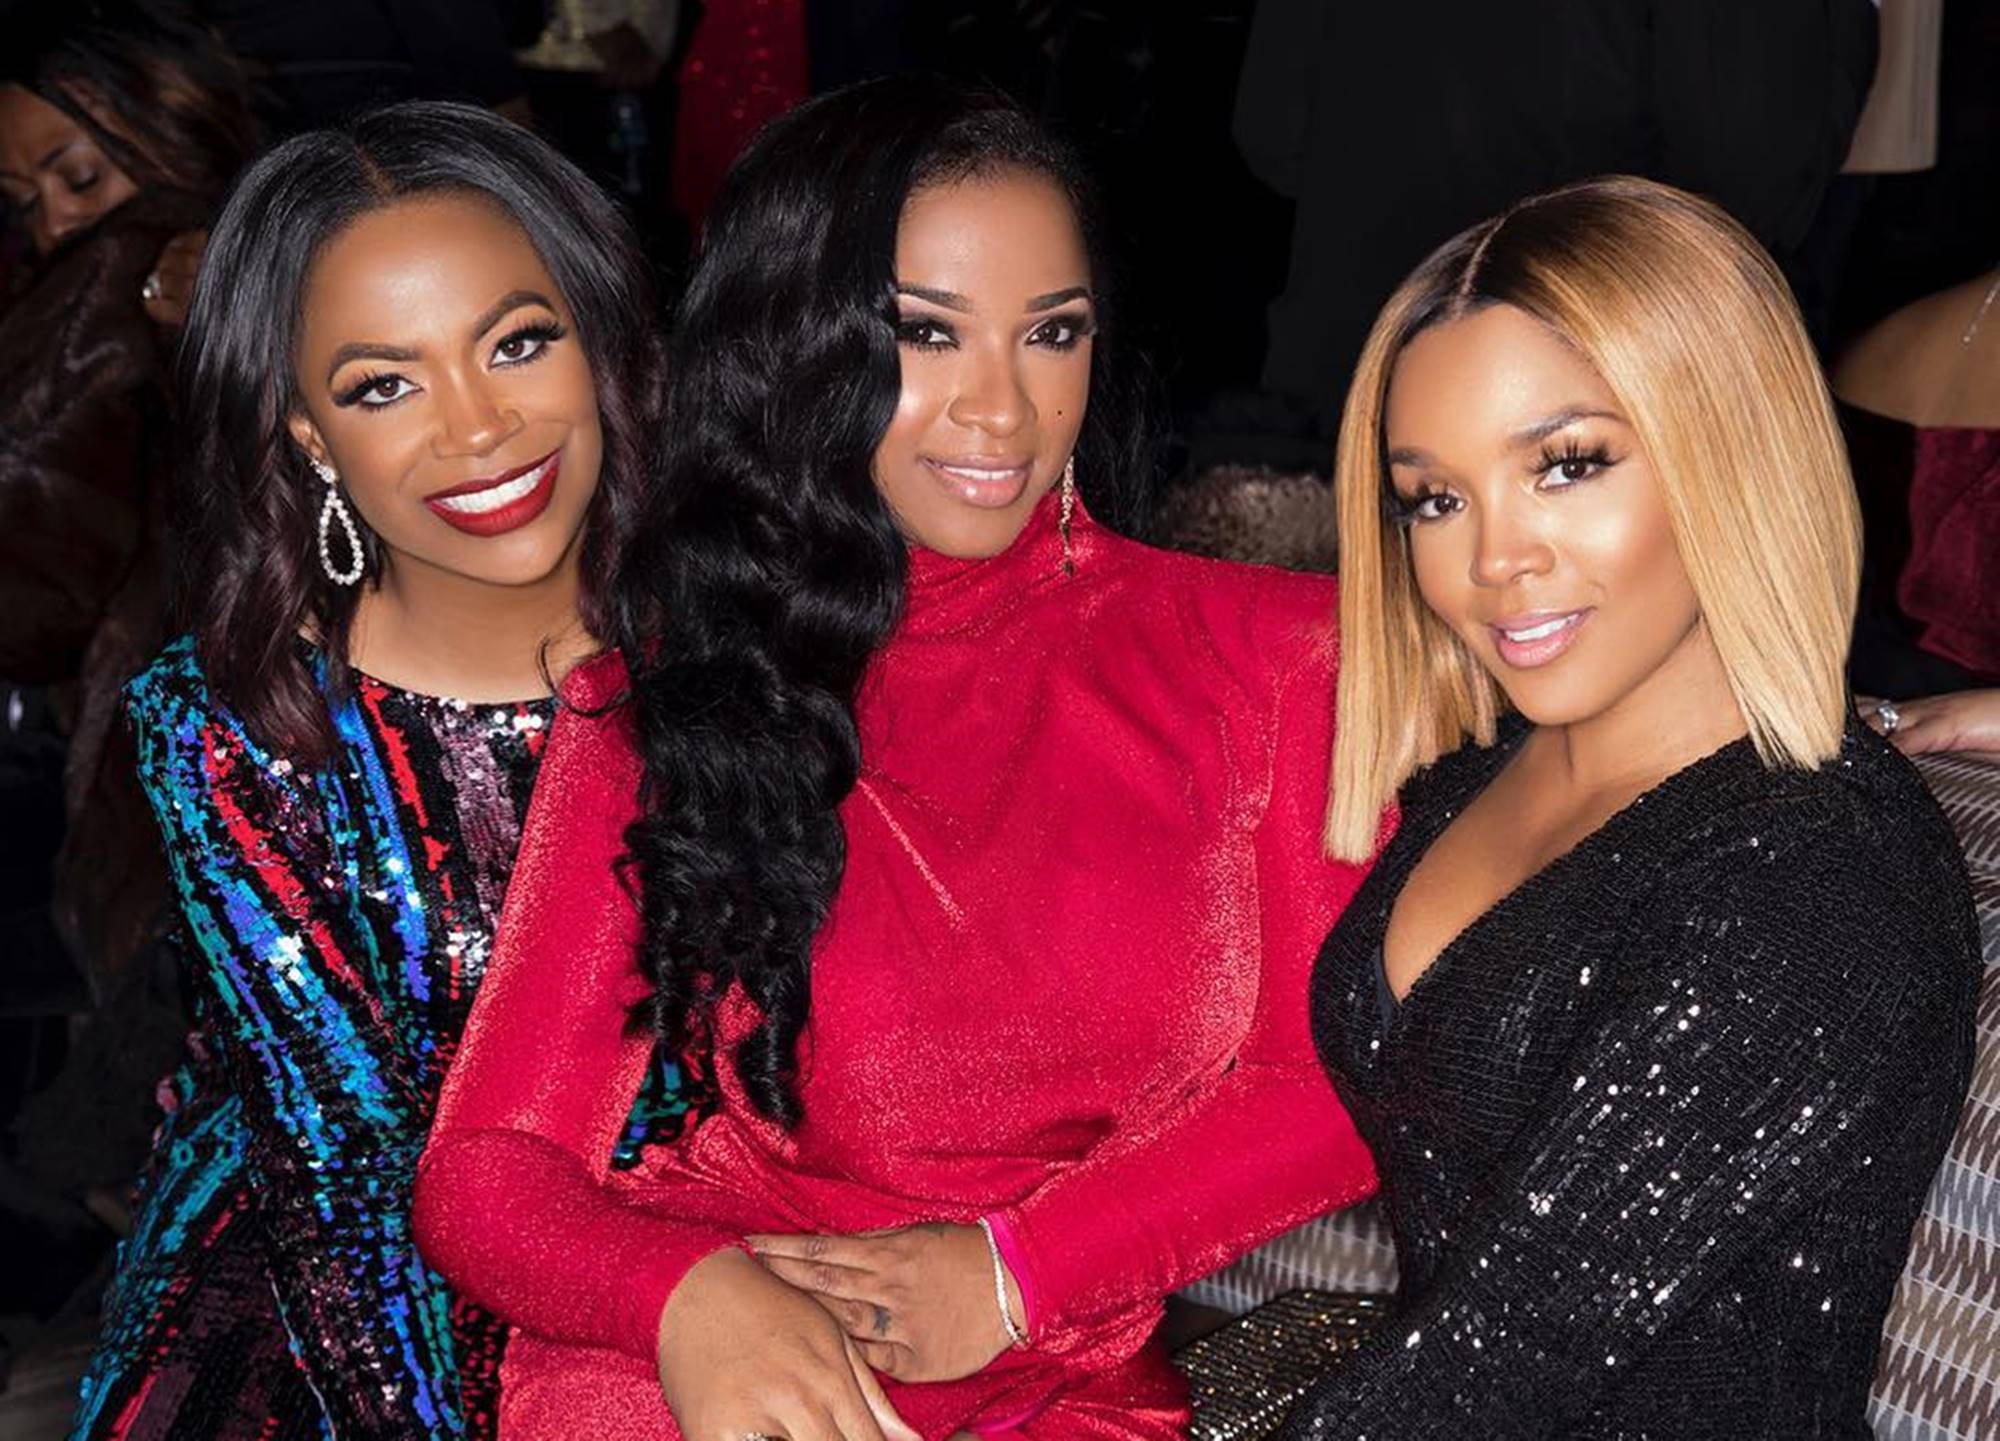 Kandi Burruss Spends Quality Time With Riley Burruss, Shamea Morton, Rasheeda Frost, And Toya Wright